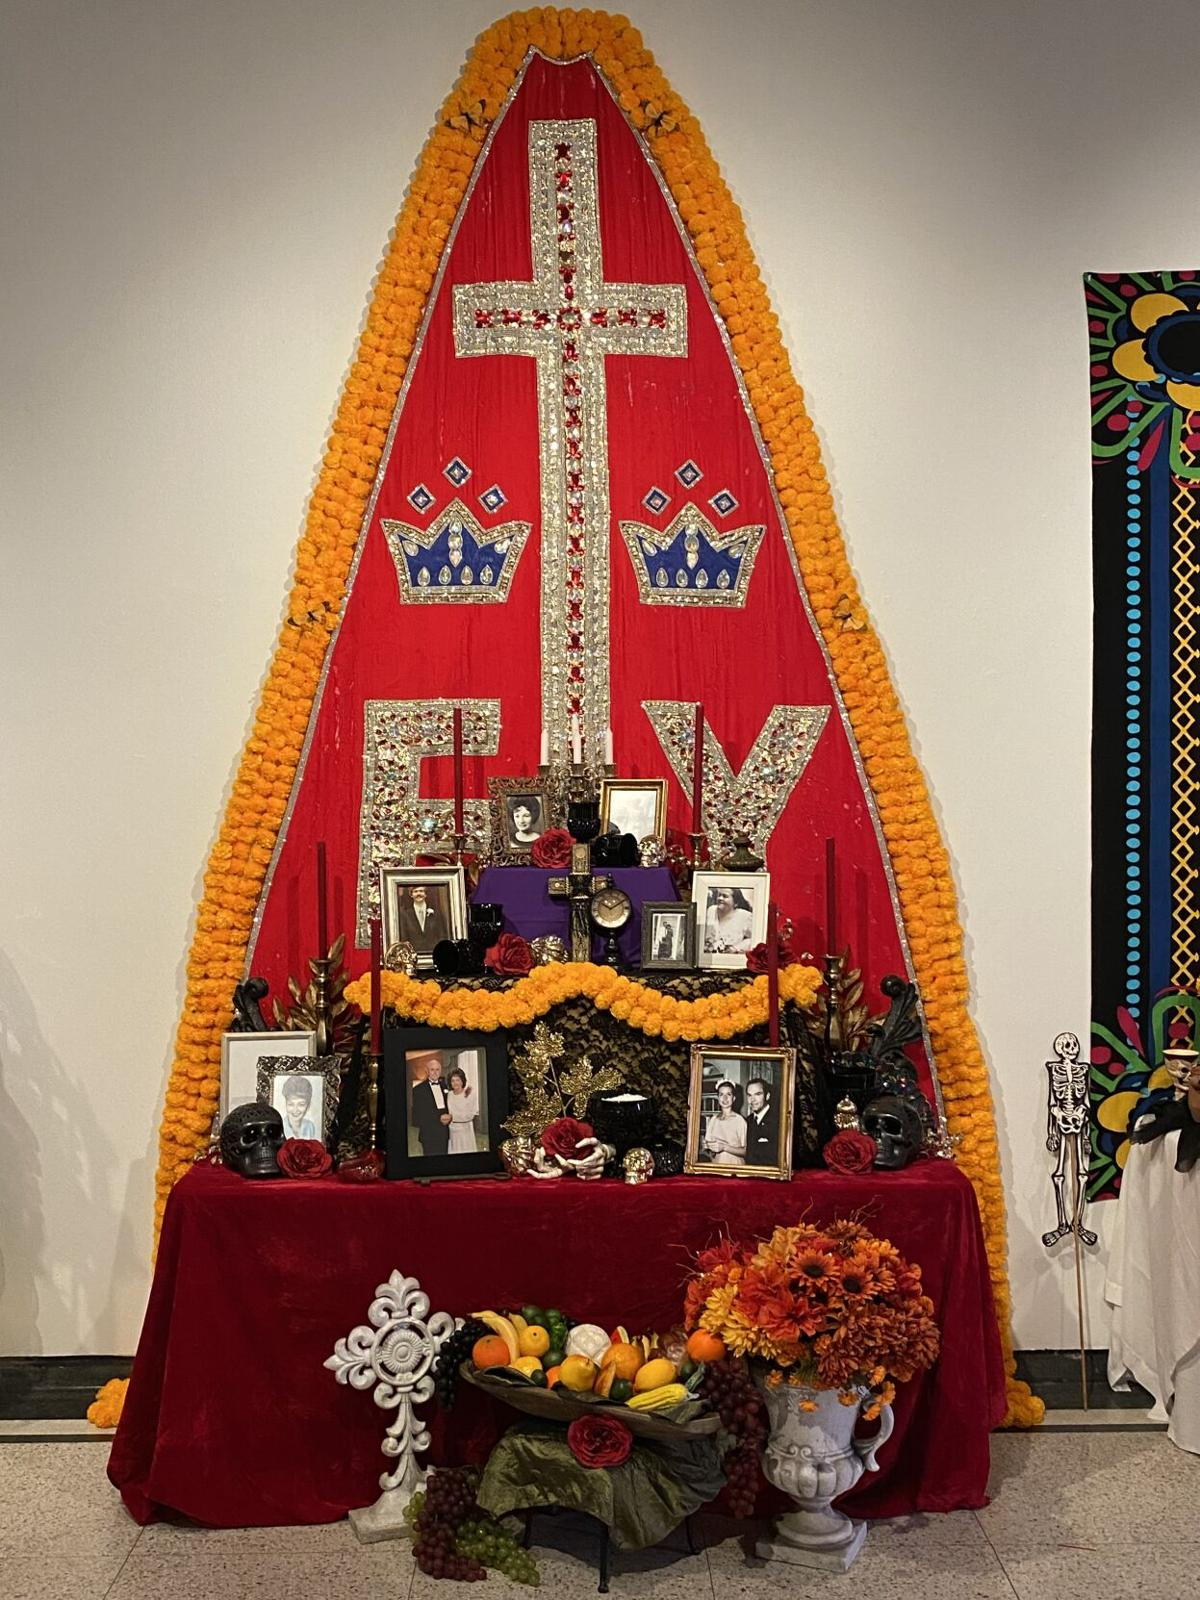 One of the altars on display at the Nave Museum